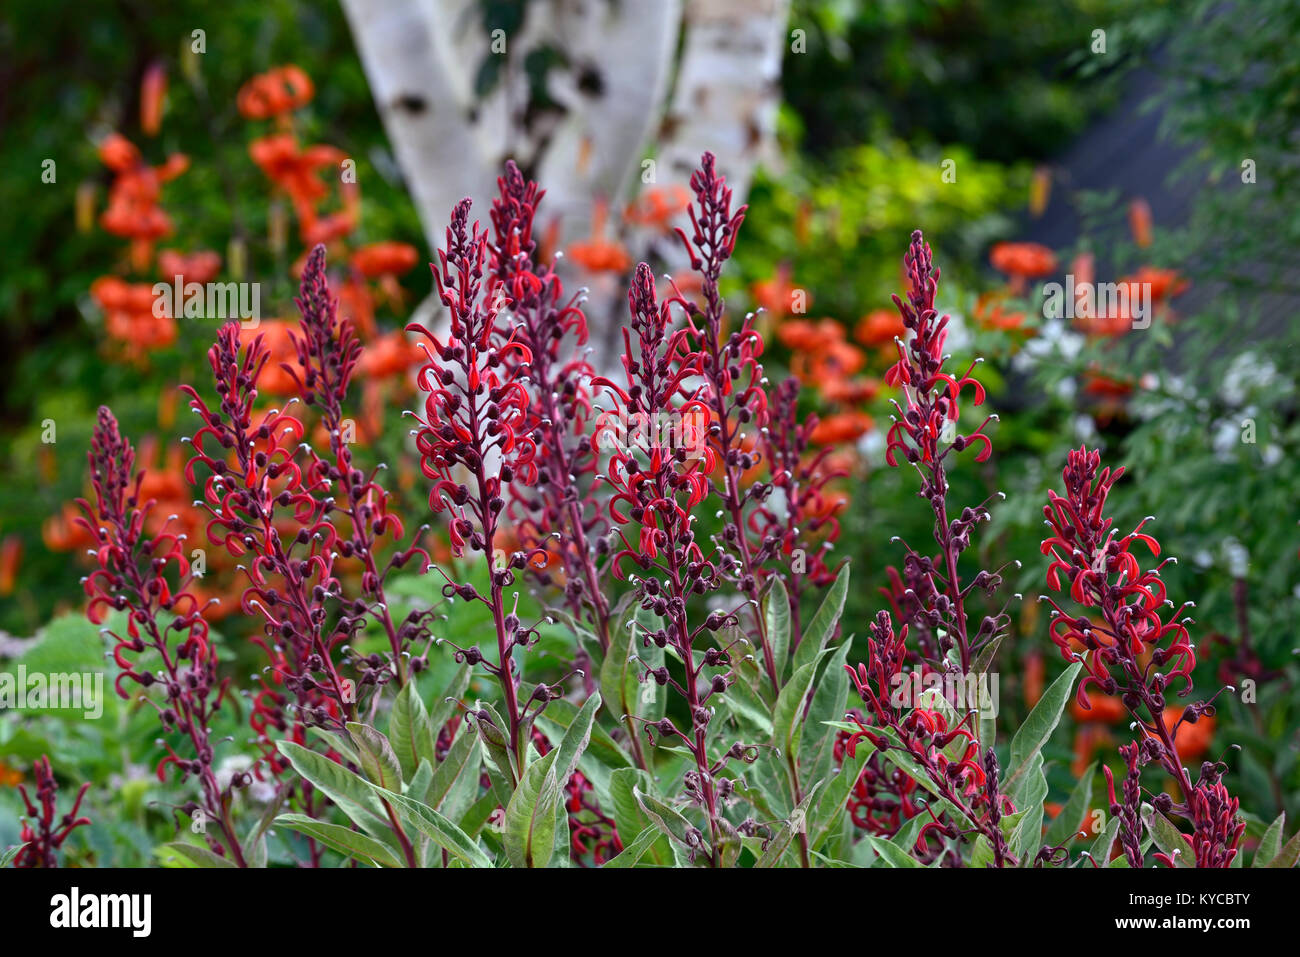 Tall Red Flowers Stock Photos & Tall Red Flowers Stock Images - Alamy